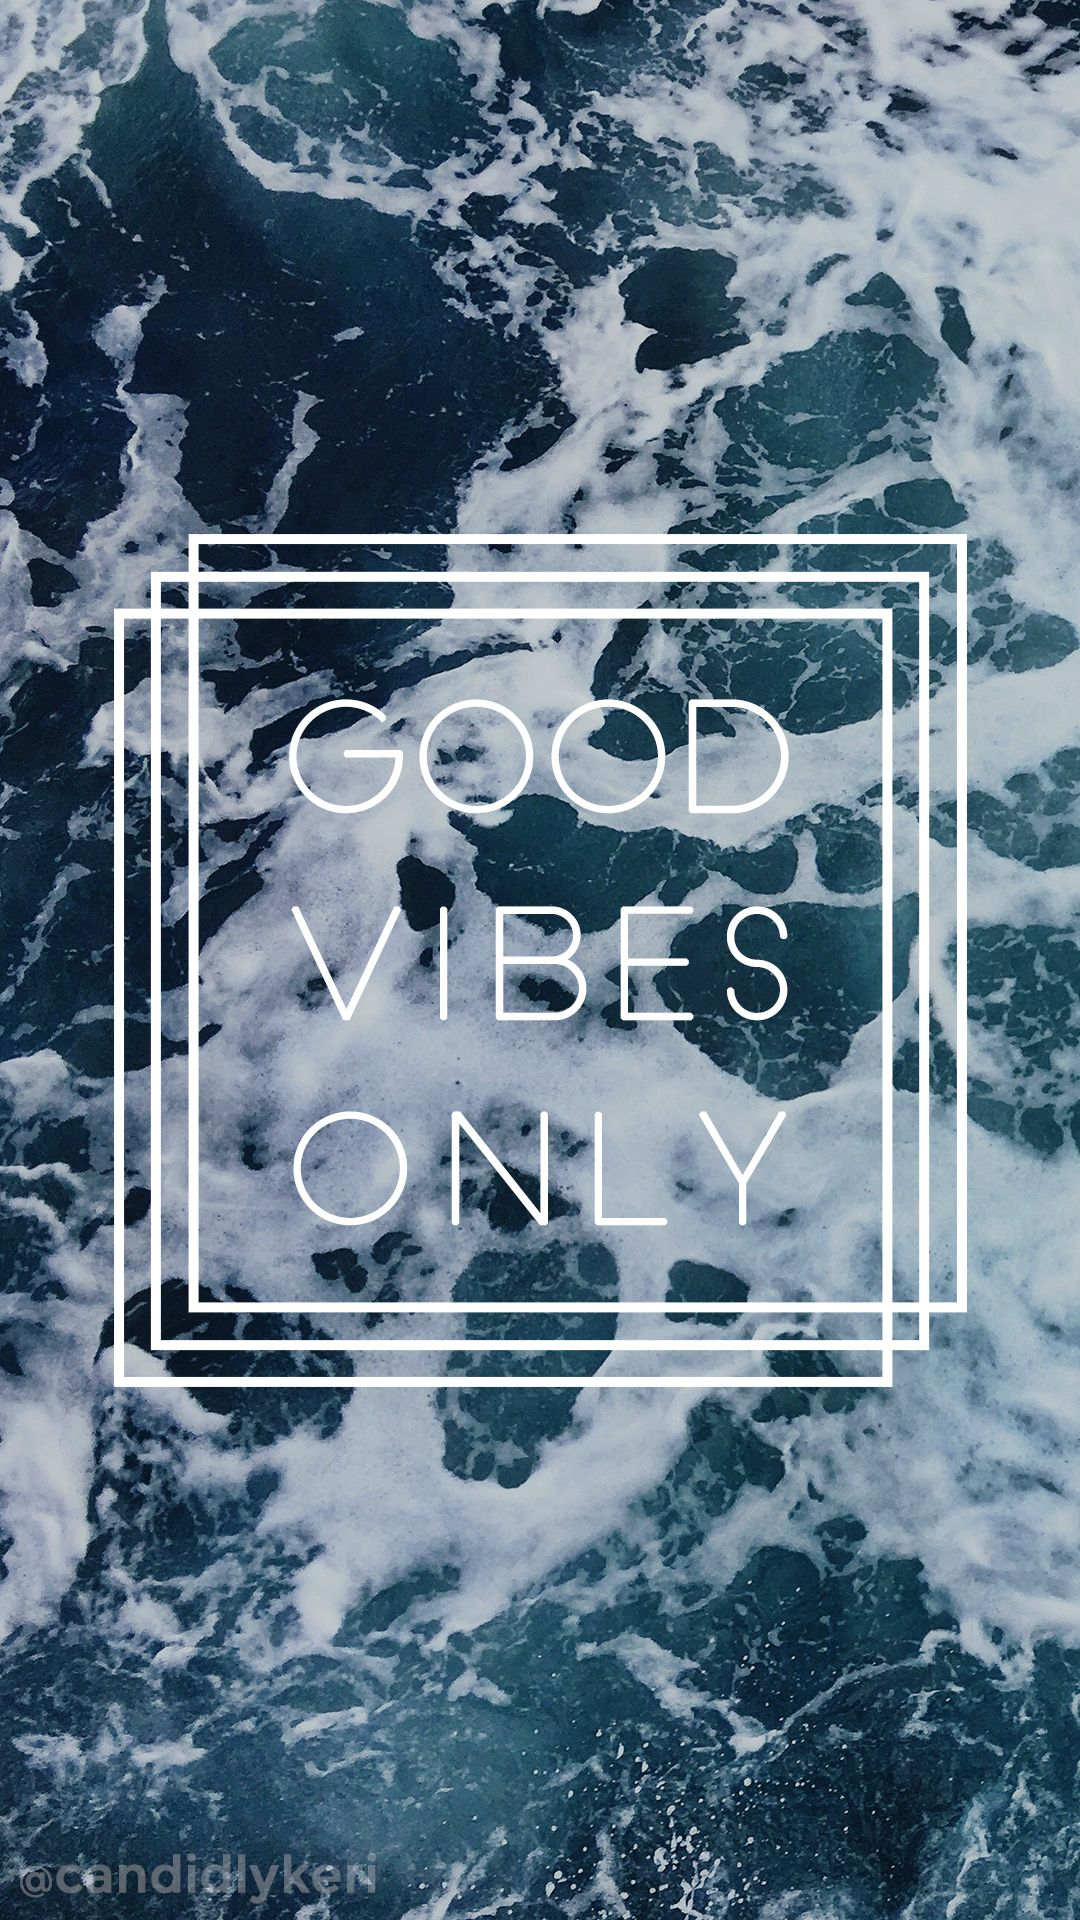 Good Vibes Only Ocean Waves Wallpaper You Can Download For Free On The Blog For Any Devi With Images Iphone Wallpaper Ocean Waves Wallpaper Good Vibes Wallpaper